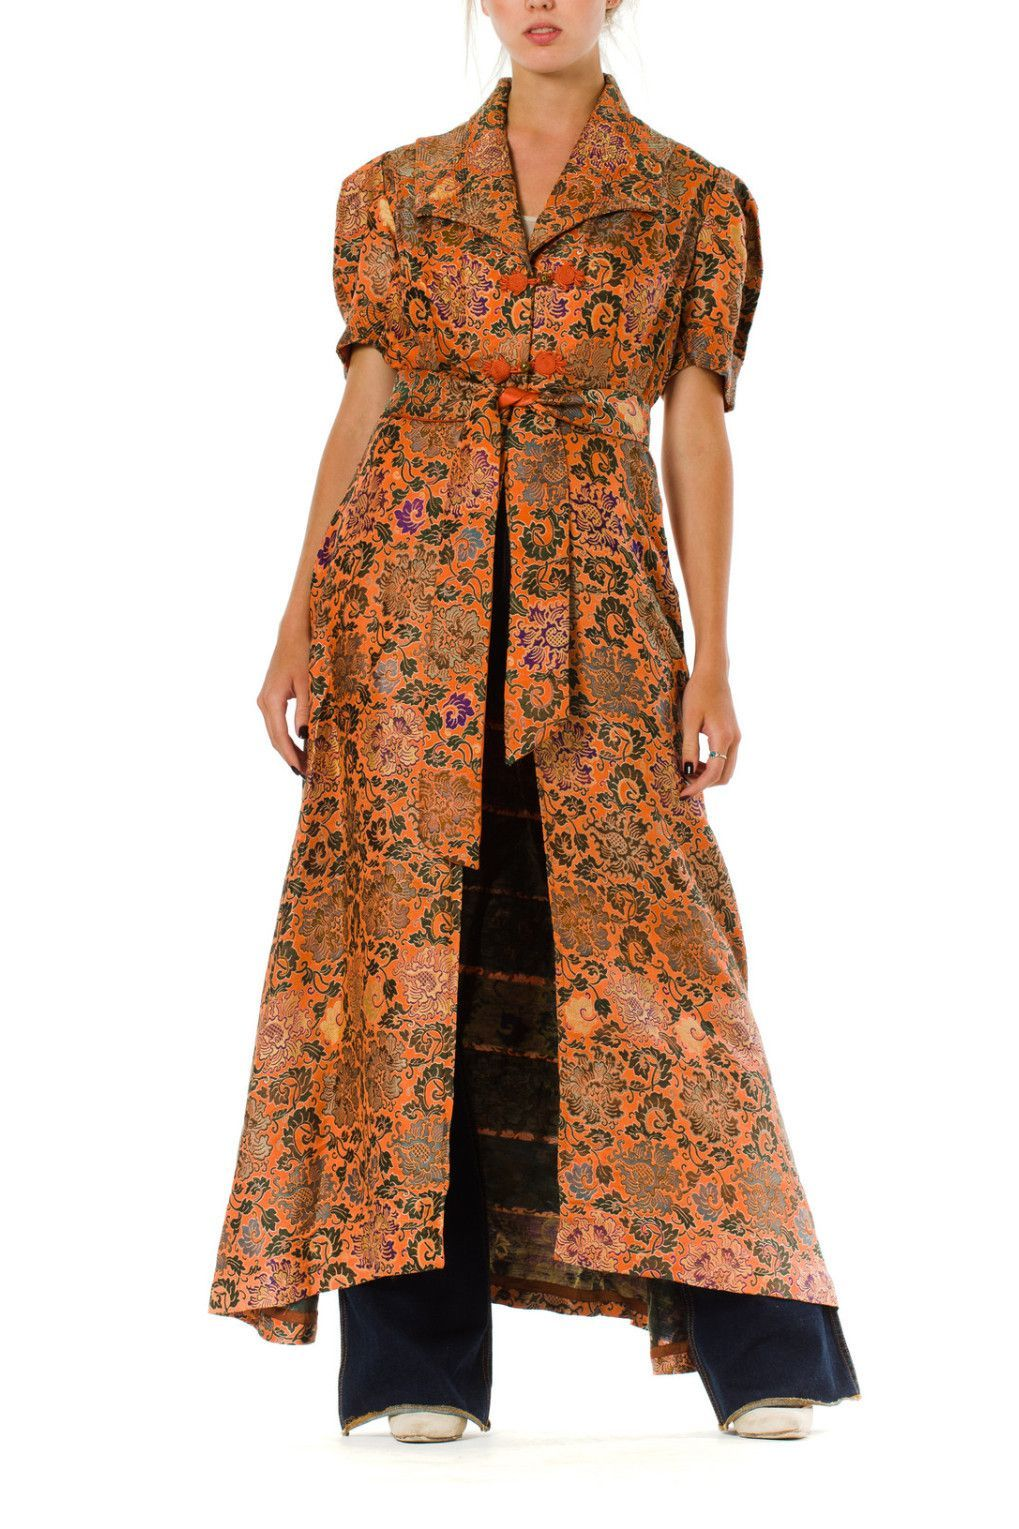 1940s Chinese Silk Jacquard Duster with Belt